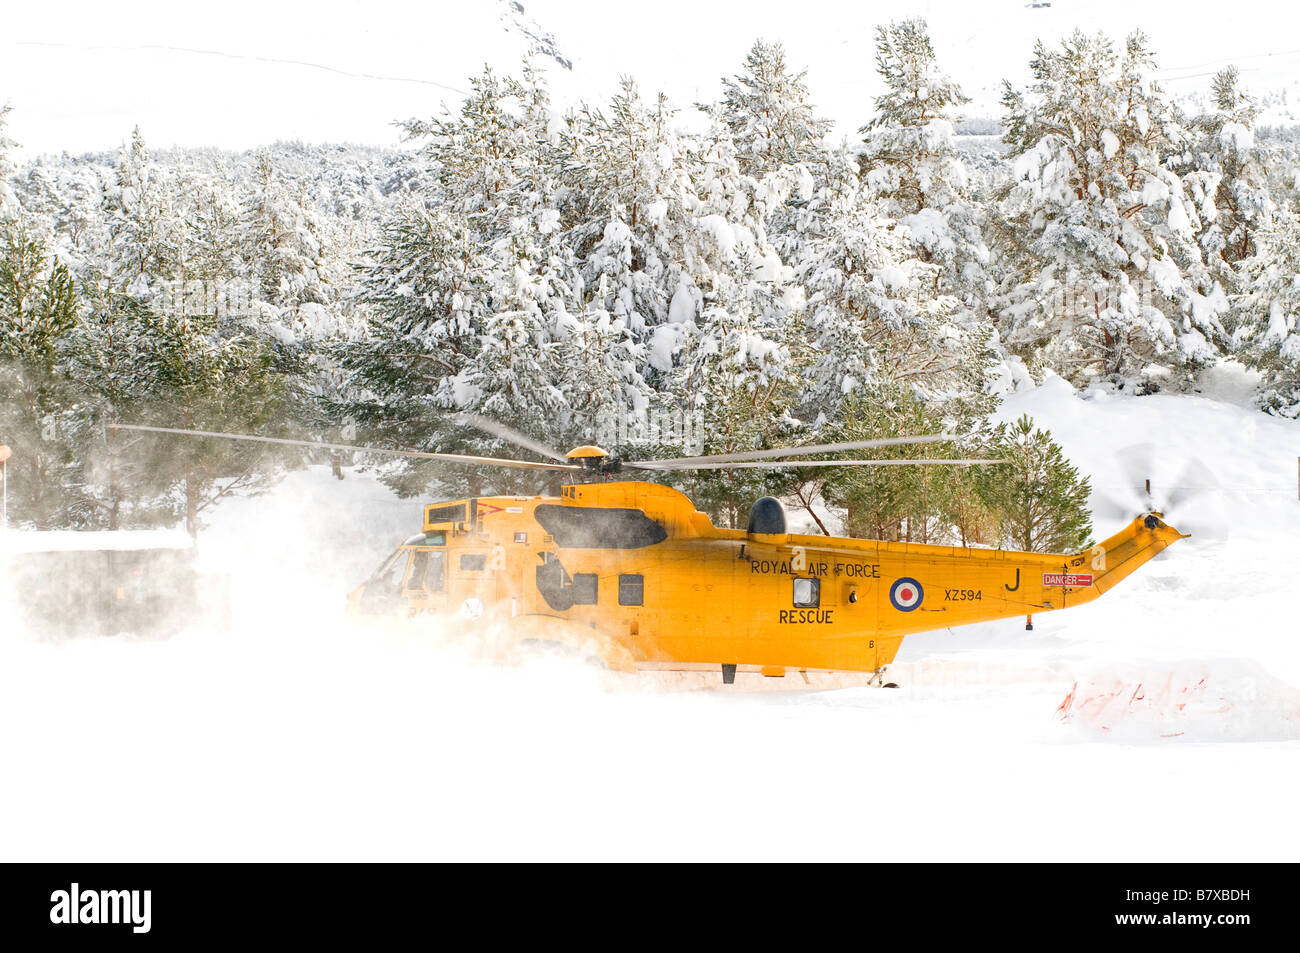 Sea King HAR.3 lifting off from Glenmore Lodge in the Cairngorms Inverness-shire Scotland UK    SCO 2041 Stock Photo